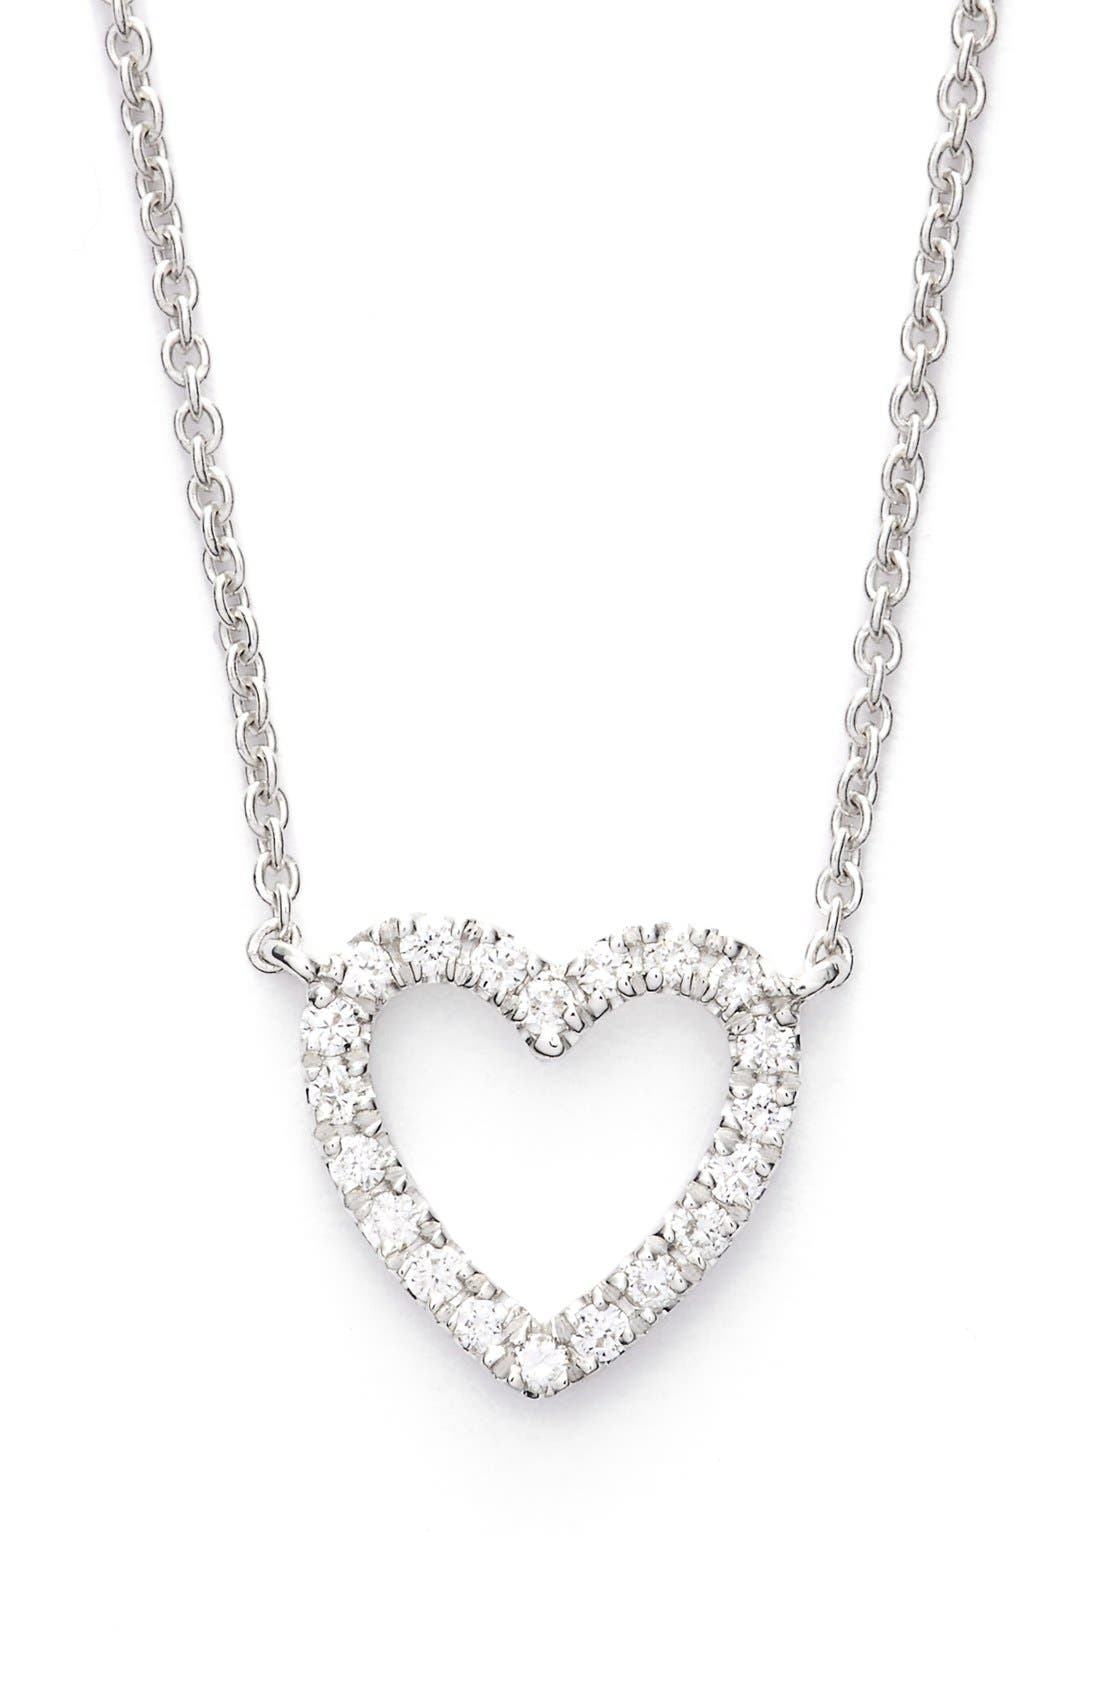 Main Image - Bony Levy Diamond Heart Pendant Necklace (Limited Edition) (Nordstrom Exclusive)